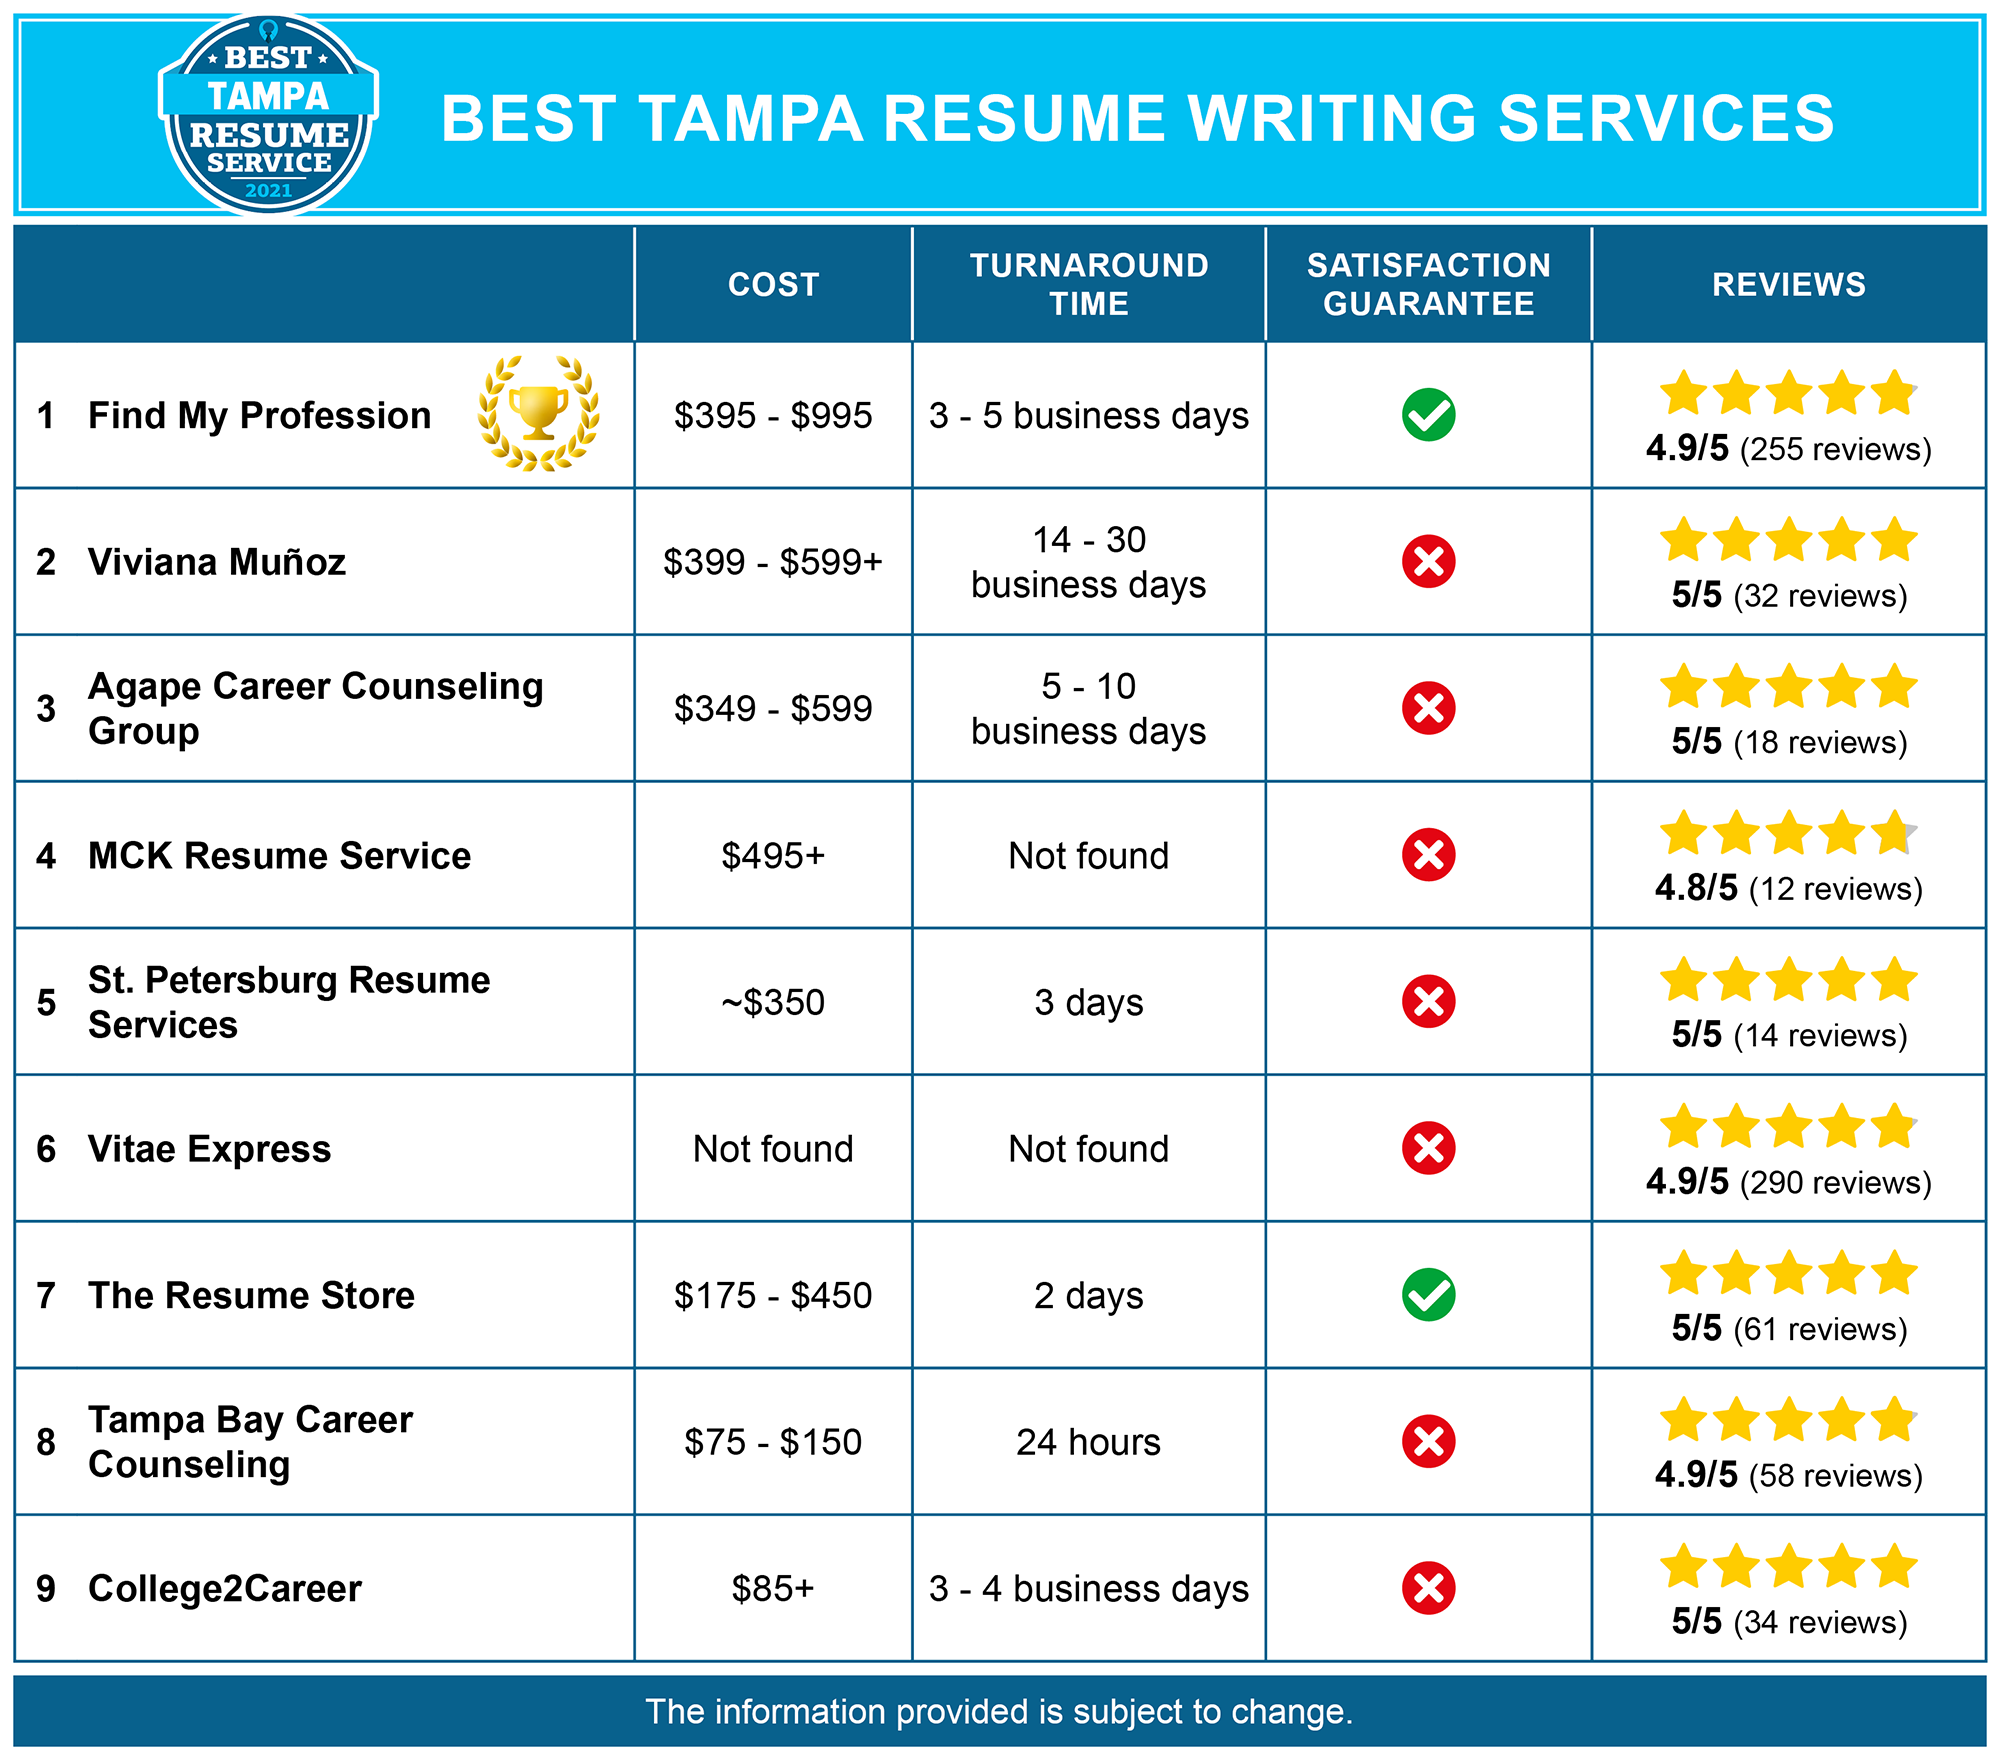 Best Tampa Resume Services